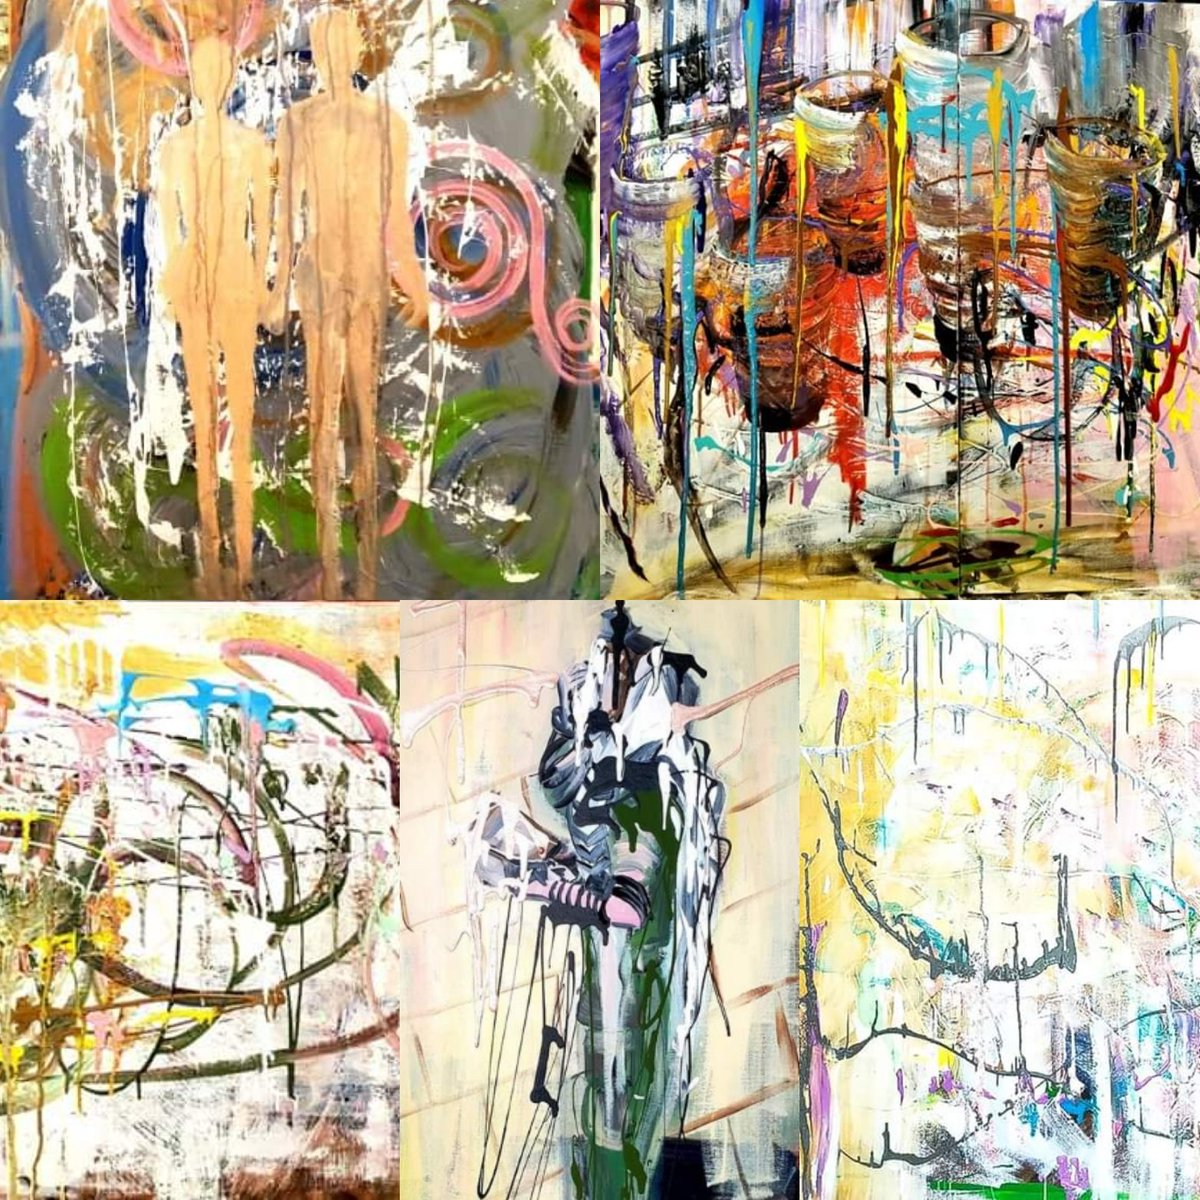 really exciting #Exhibit I'll be significantly #featured during #ArtBasel Week  Art House MRKT- #Miami Wed, Dec 4, 2019, 1:00 PM – Sat, Dec 7, 2019, 8:00 PM EST 1201 NE 83rd Street Miami, #Florida  These #paintings will be #exhibited  #art #MiamiArtist #repost #artistsontwitter